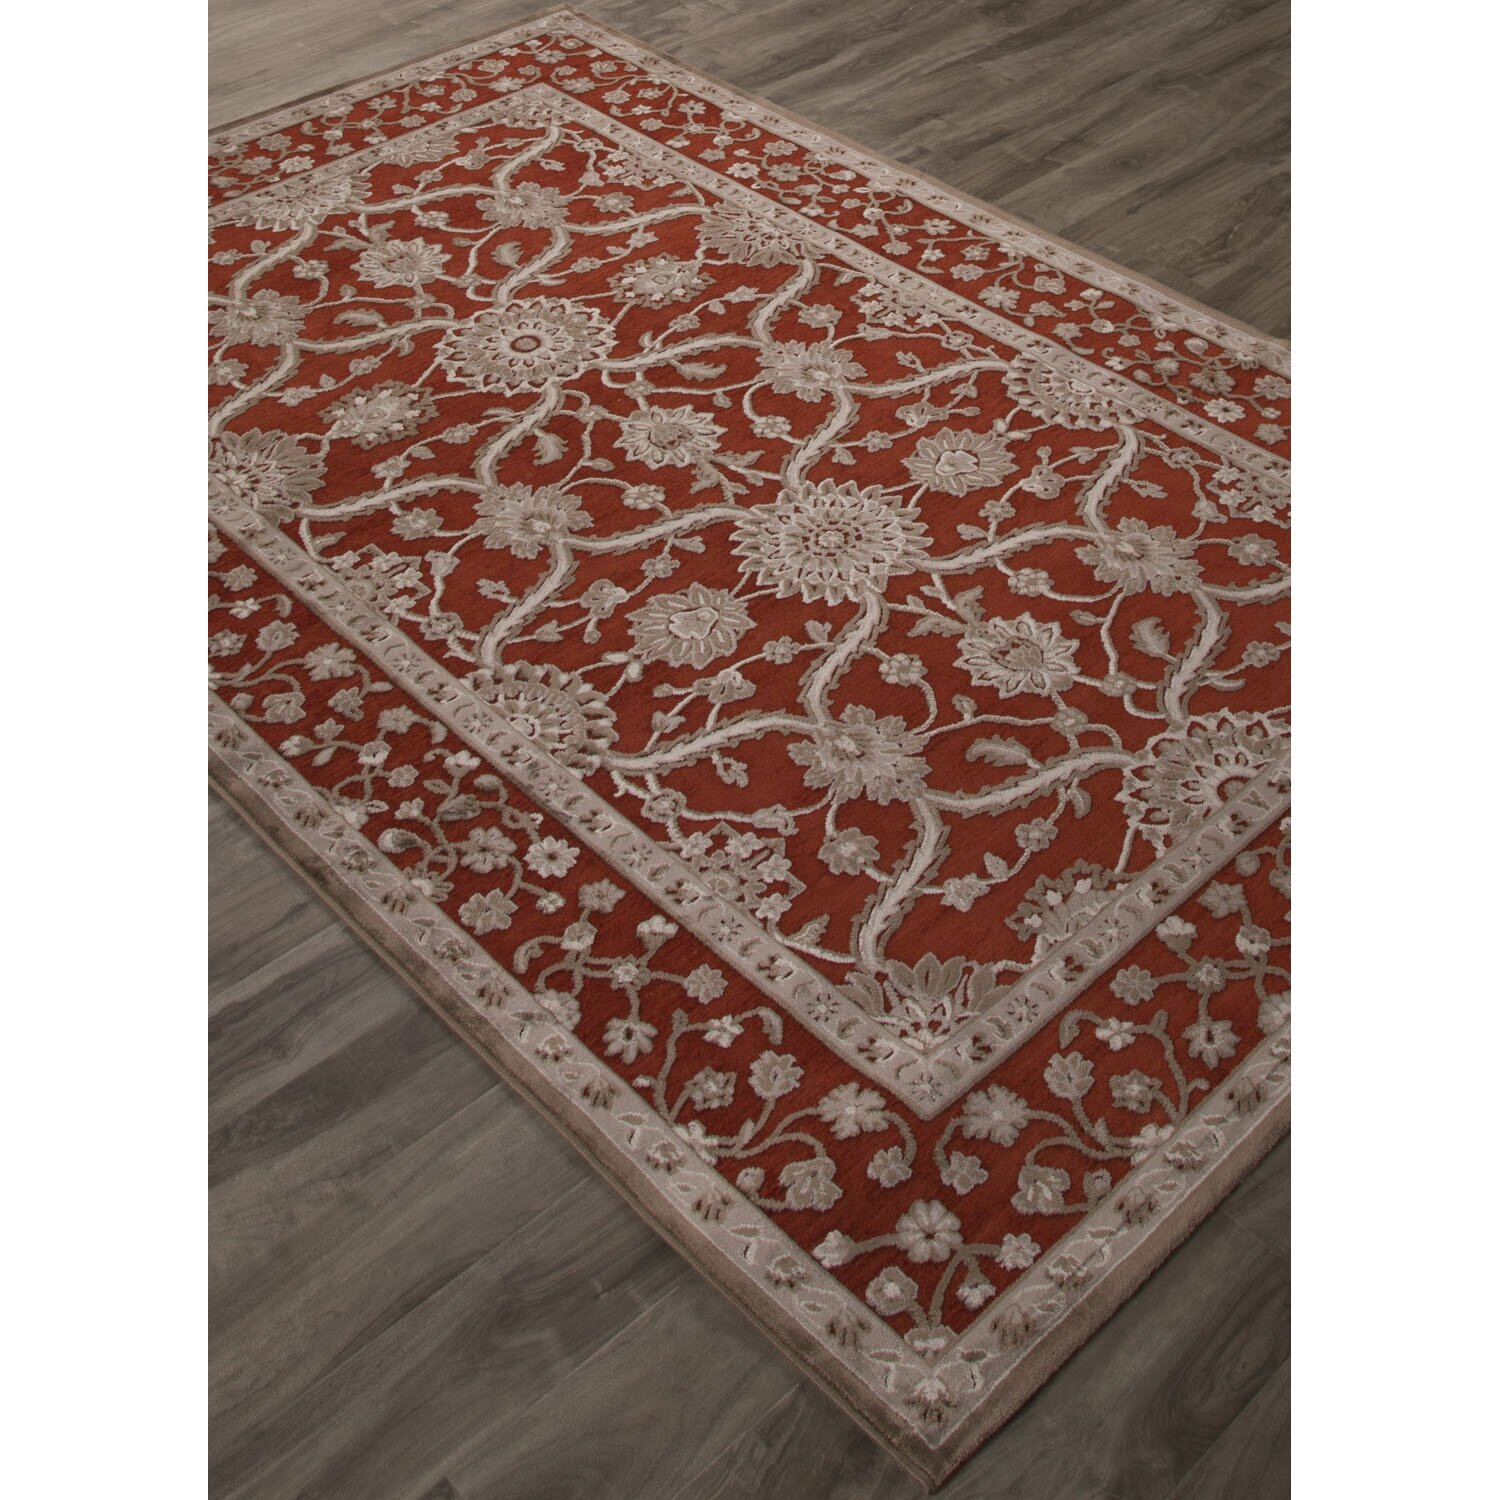 jaipurliving fables red gray area rug wayfair. Black Bedroom Furniture Sets. Home Design Ideas